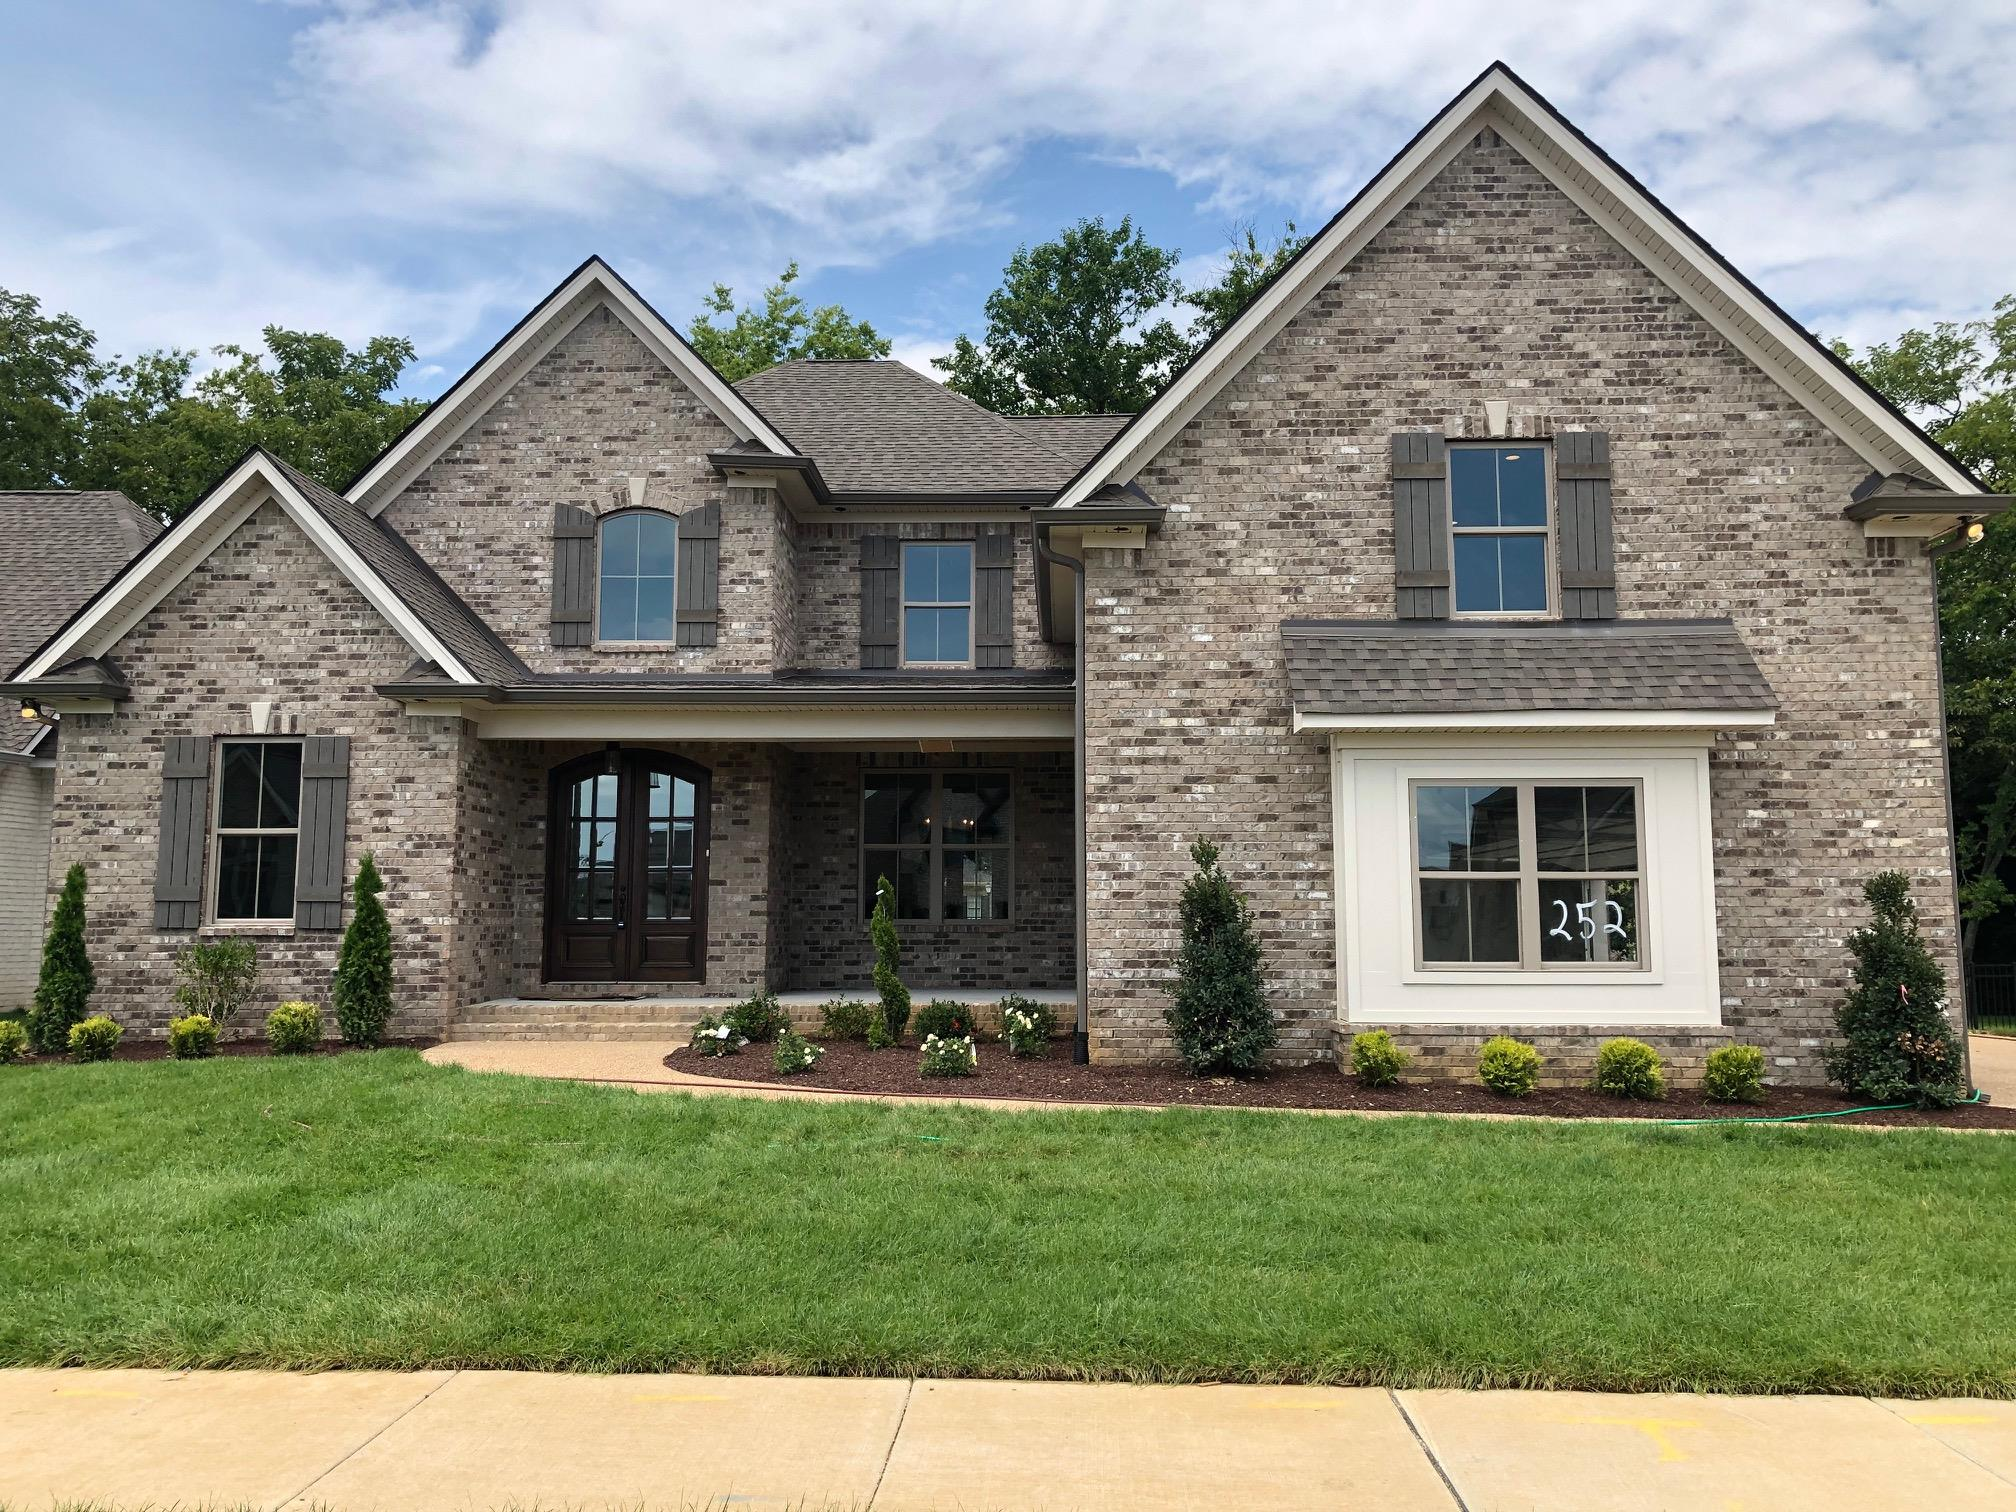 1579 Bunbury Dr. (252), Thompsons Station, TN 37179 - Thompsons Station, TN real estate listing